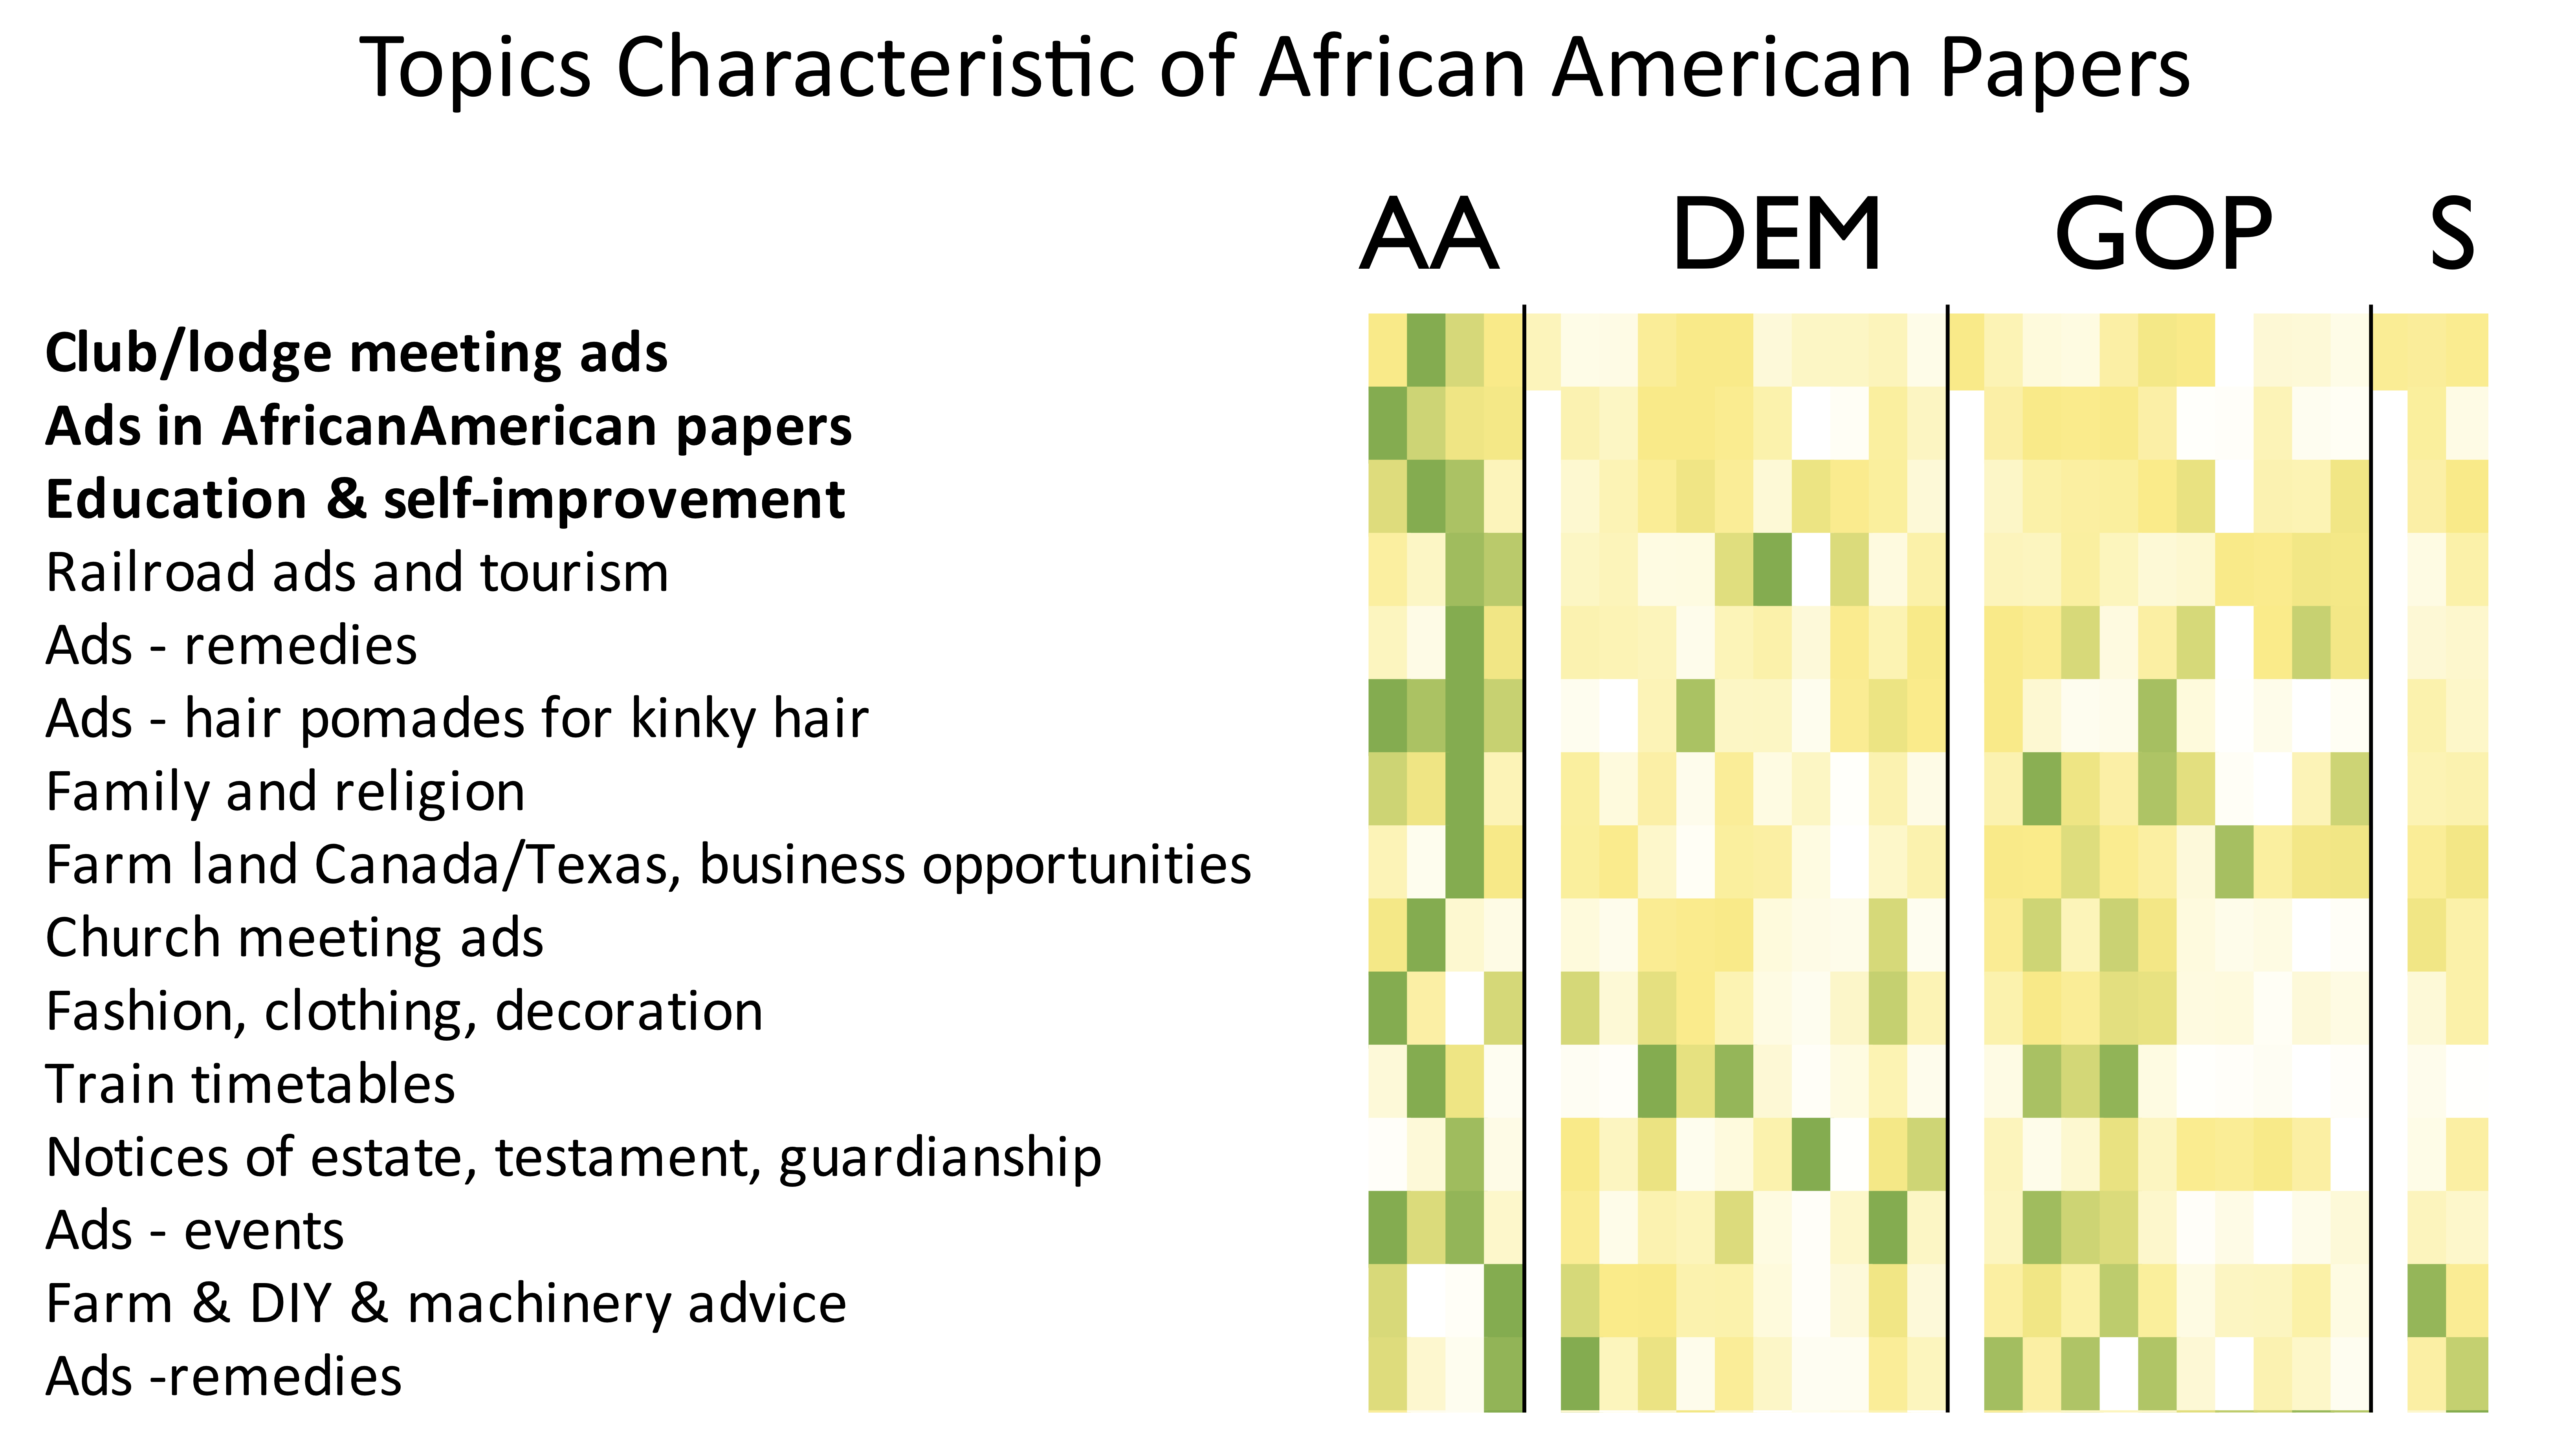 Heat map showing the topics most prominent in African American newspapers.